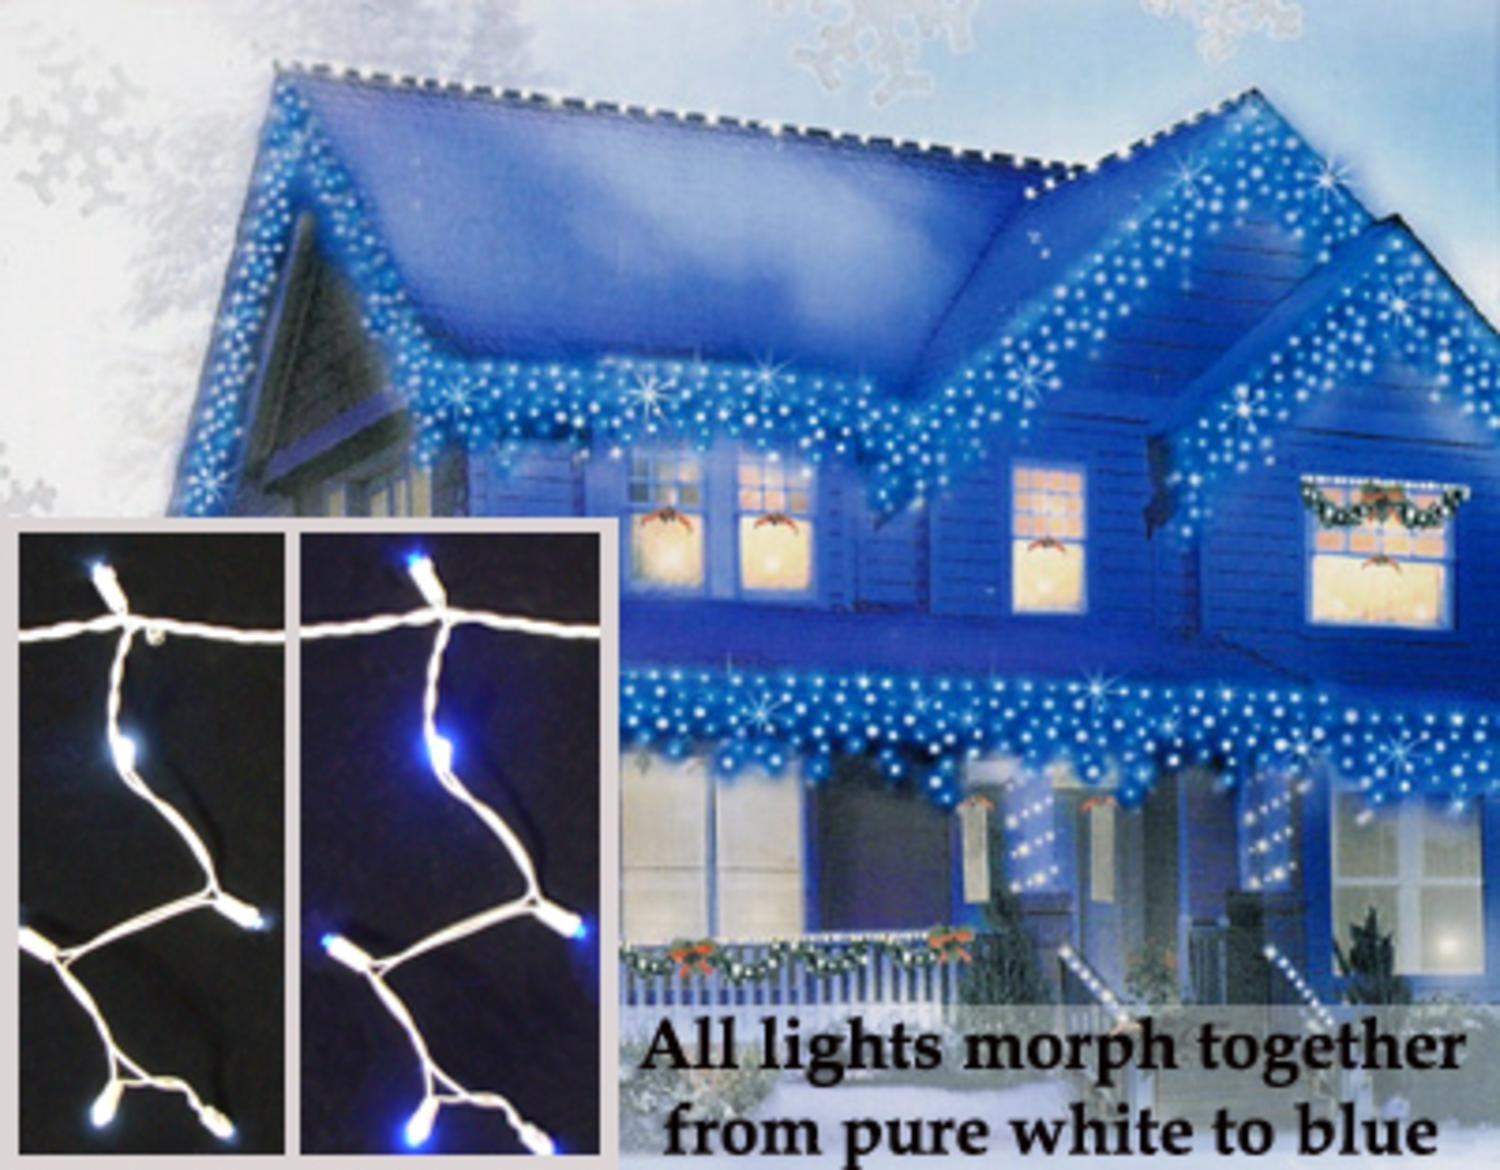 amazoncom set of 100 led bluepure white color changing wide angle icicle christmas lights string lights garden outdoor - Led Blue Christmas Lights